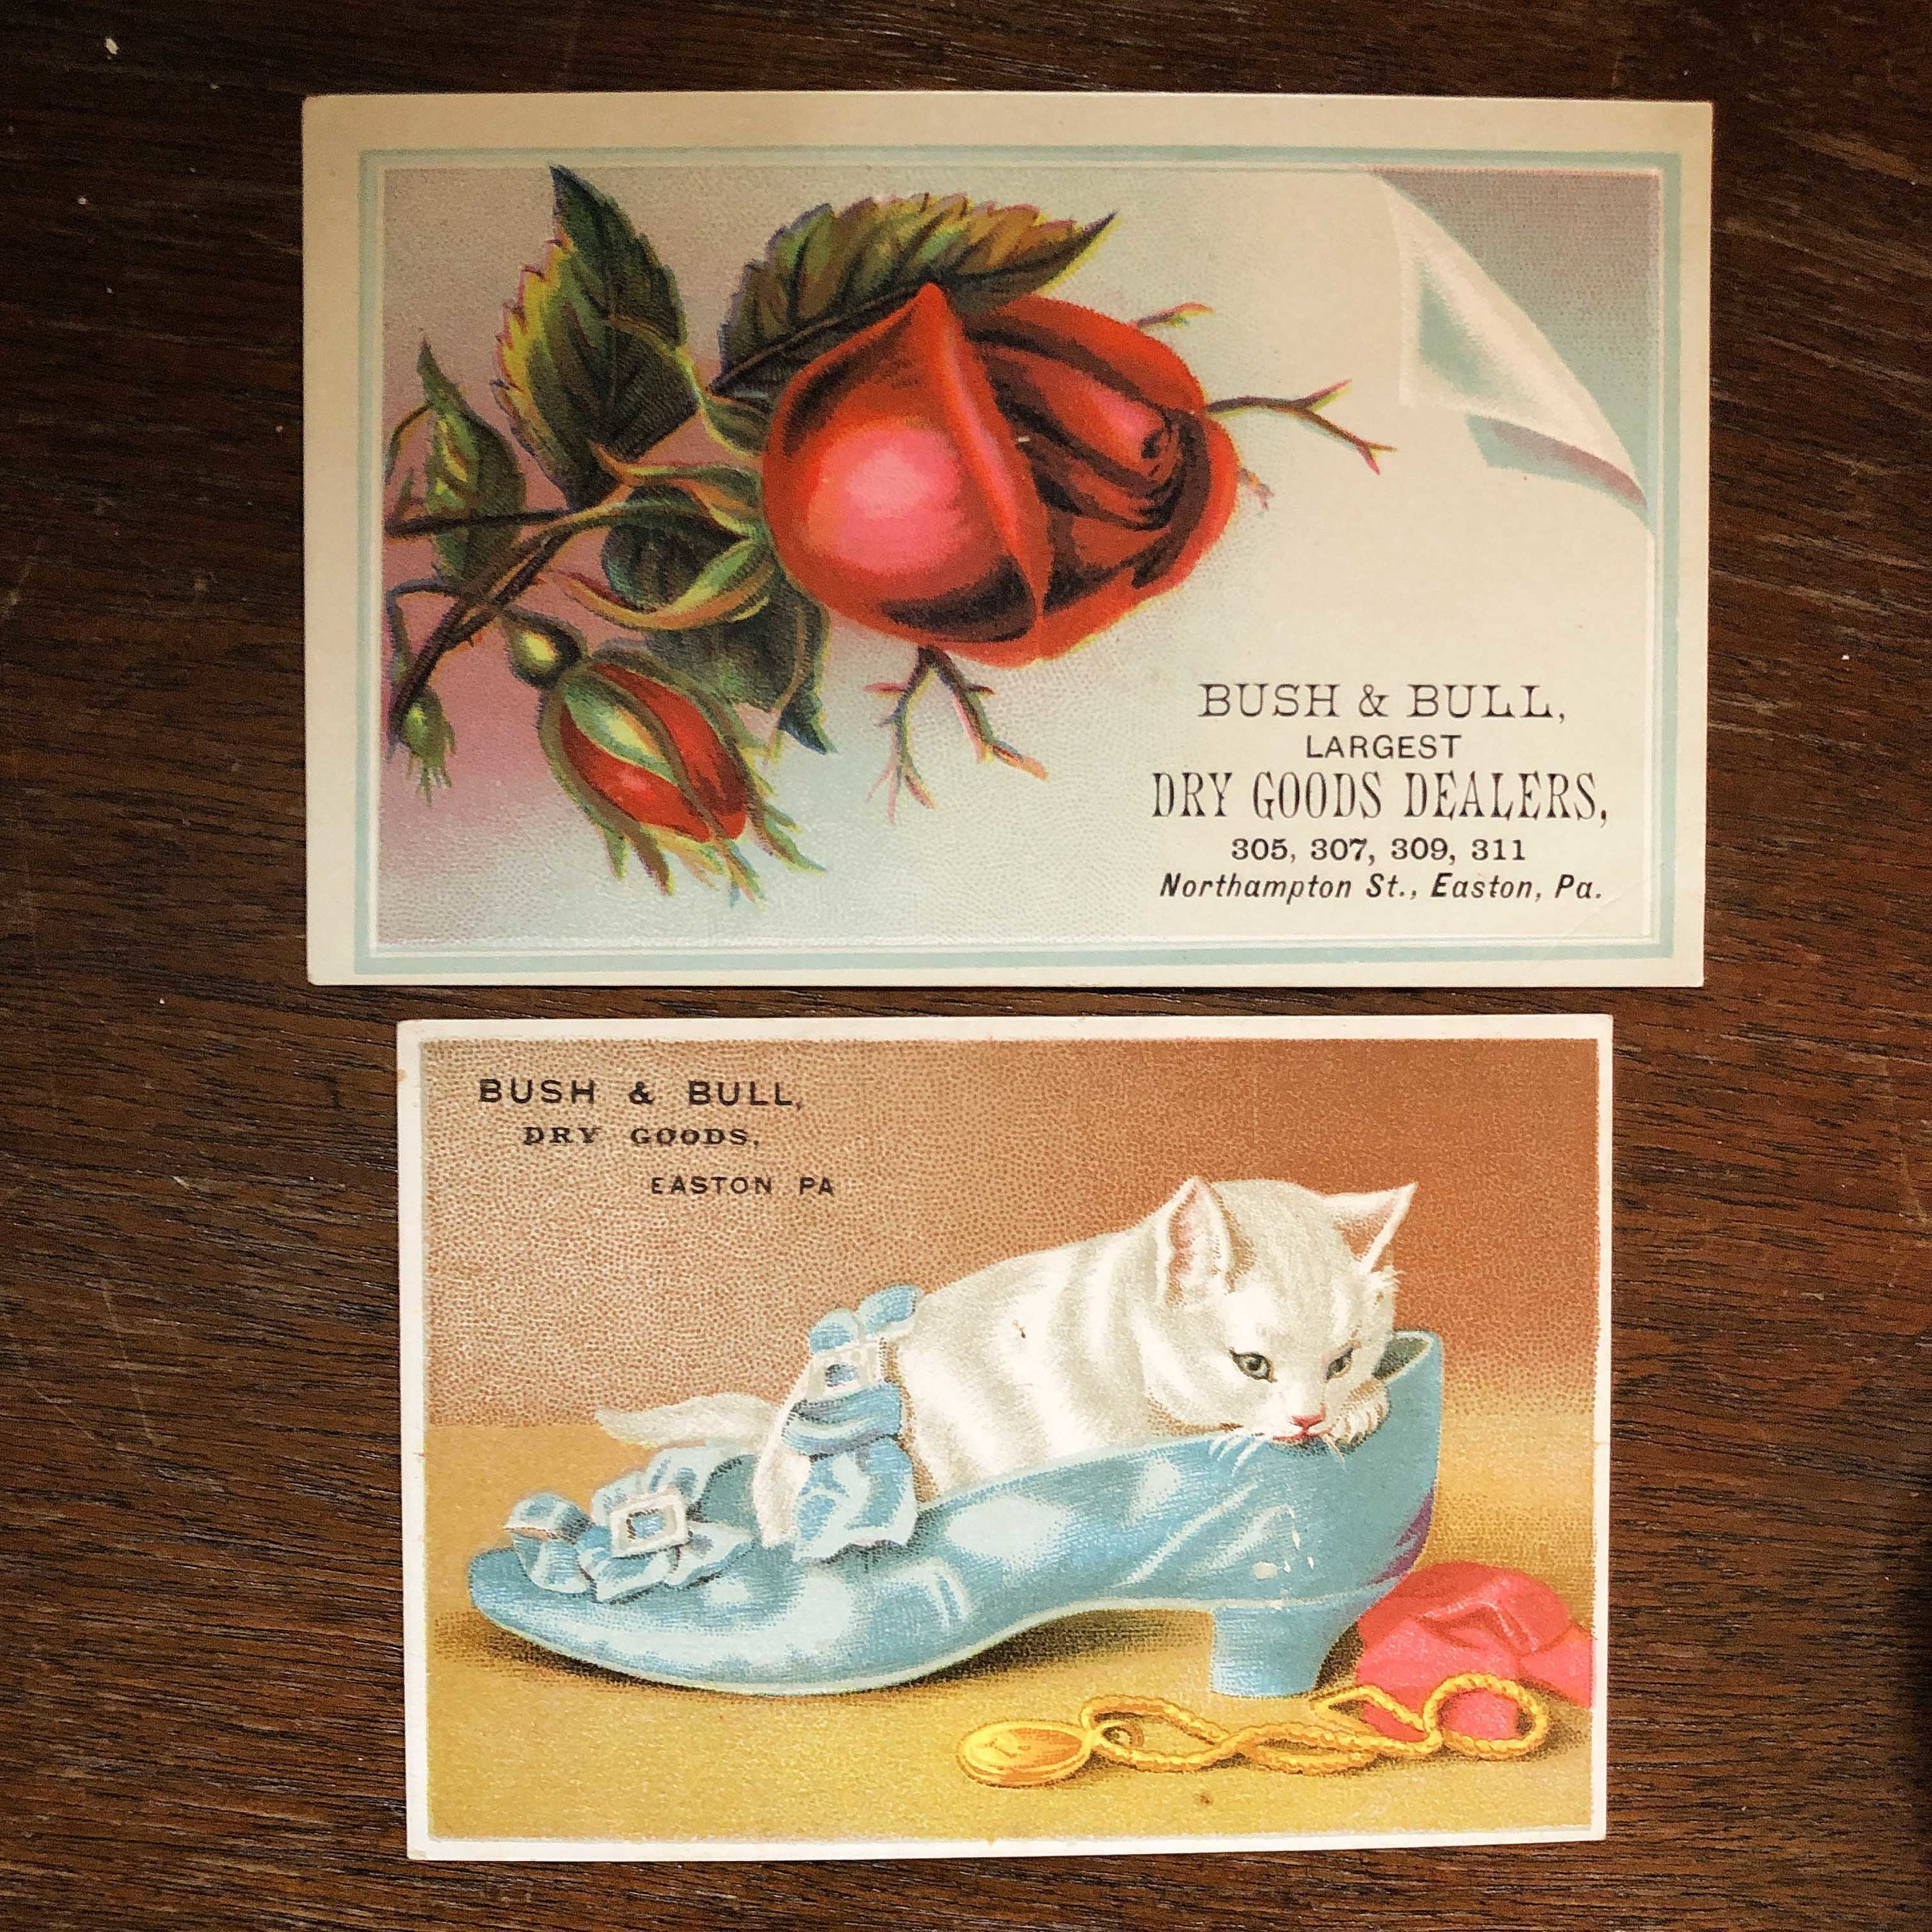 A pair of original Bush & Bull trade cards, given away to customers at the department store